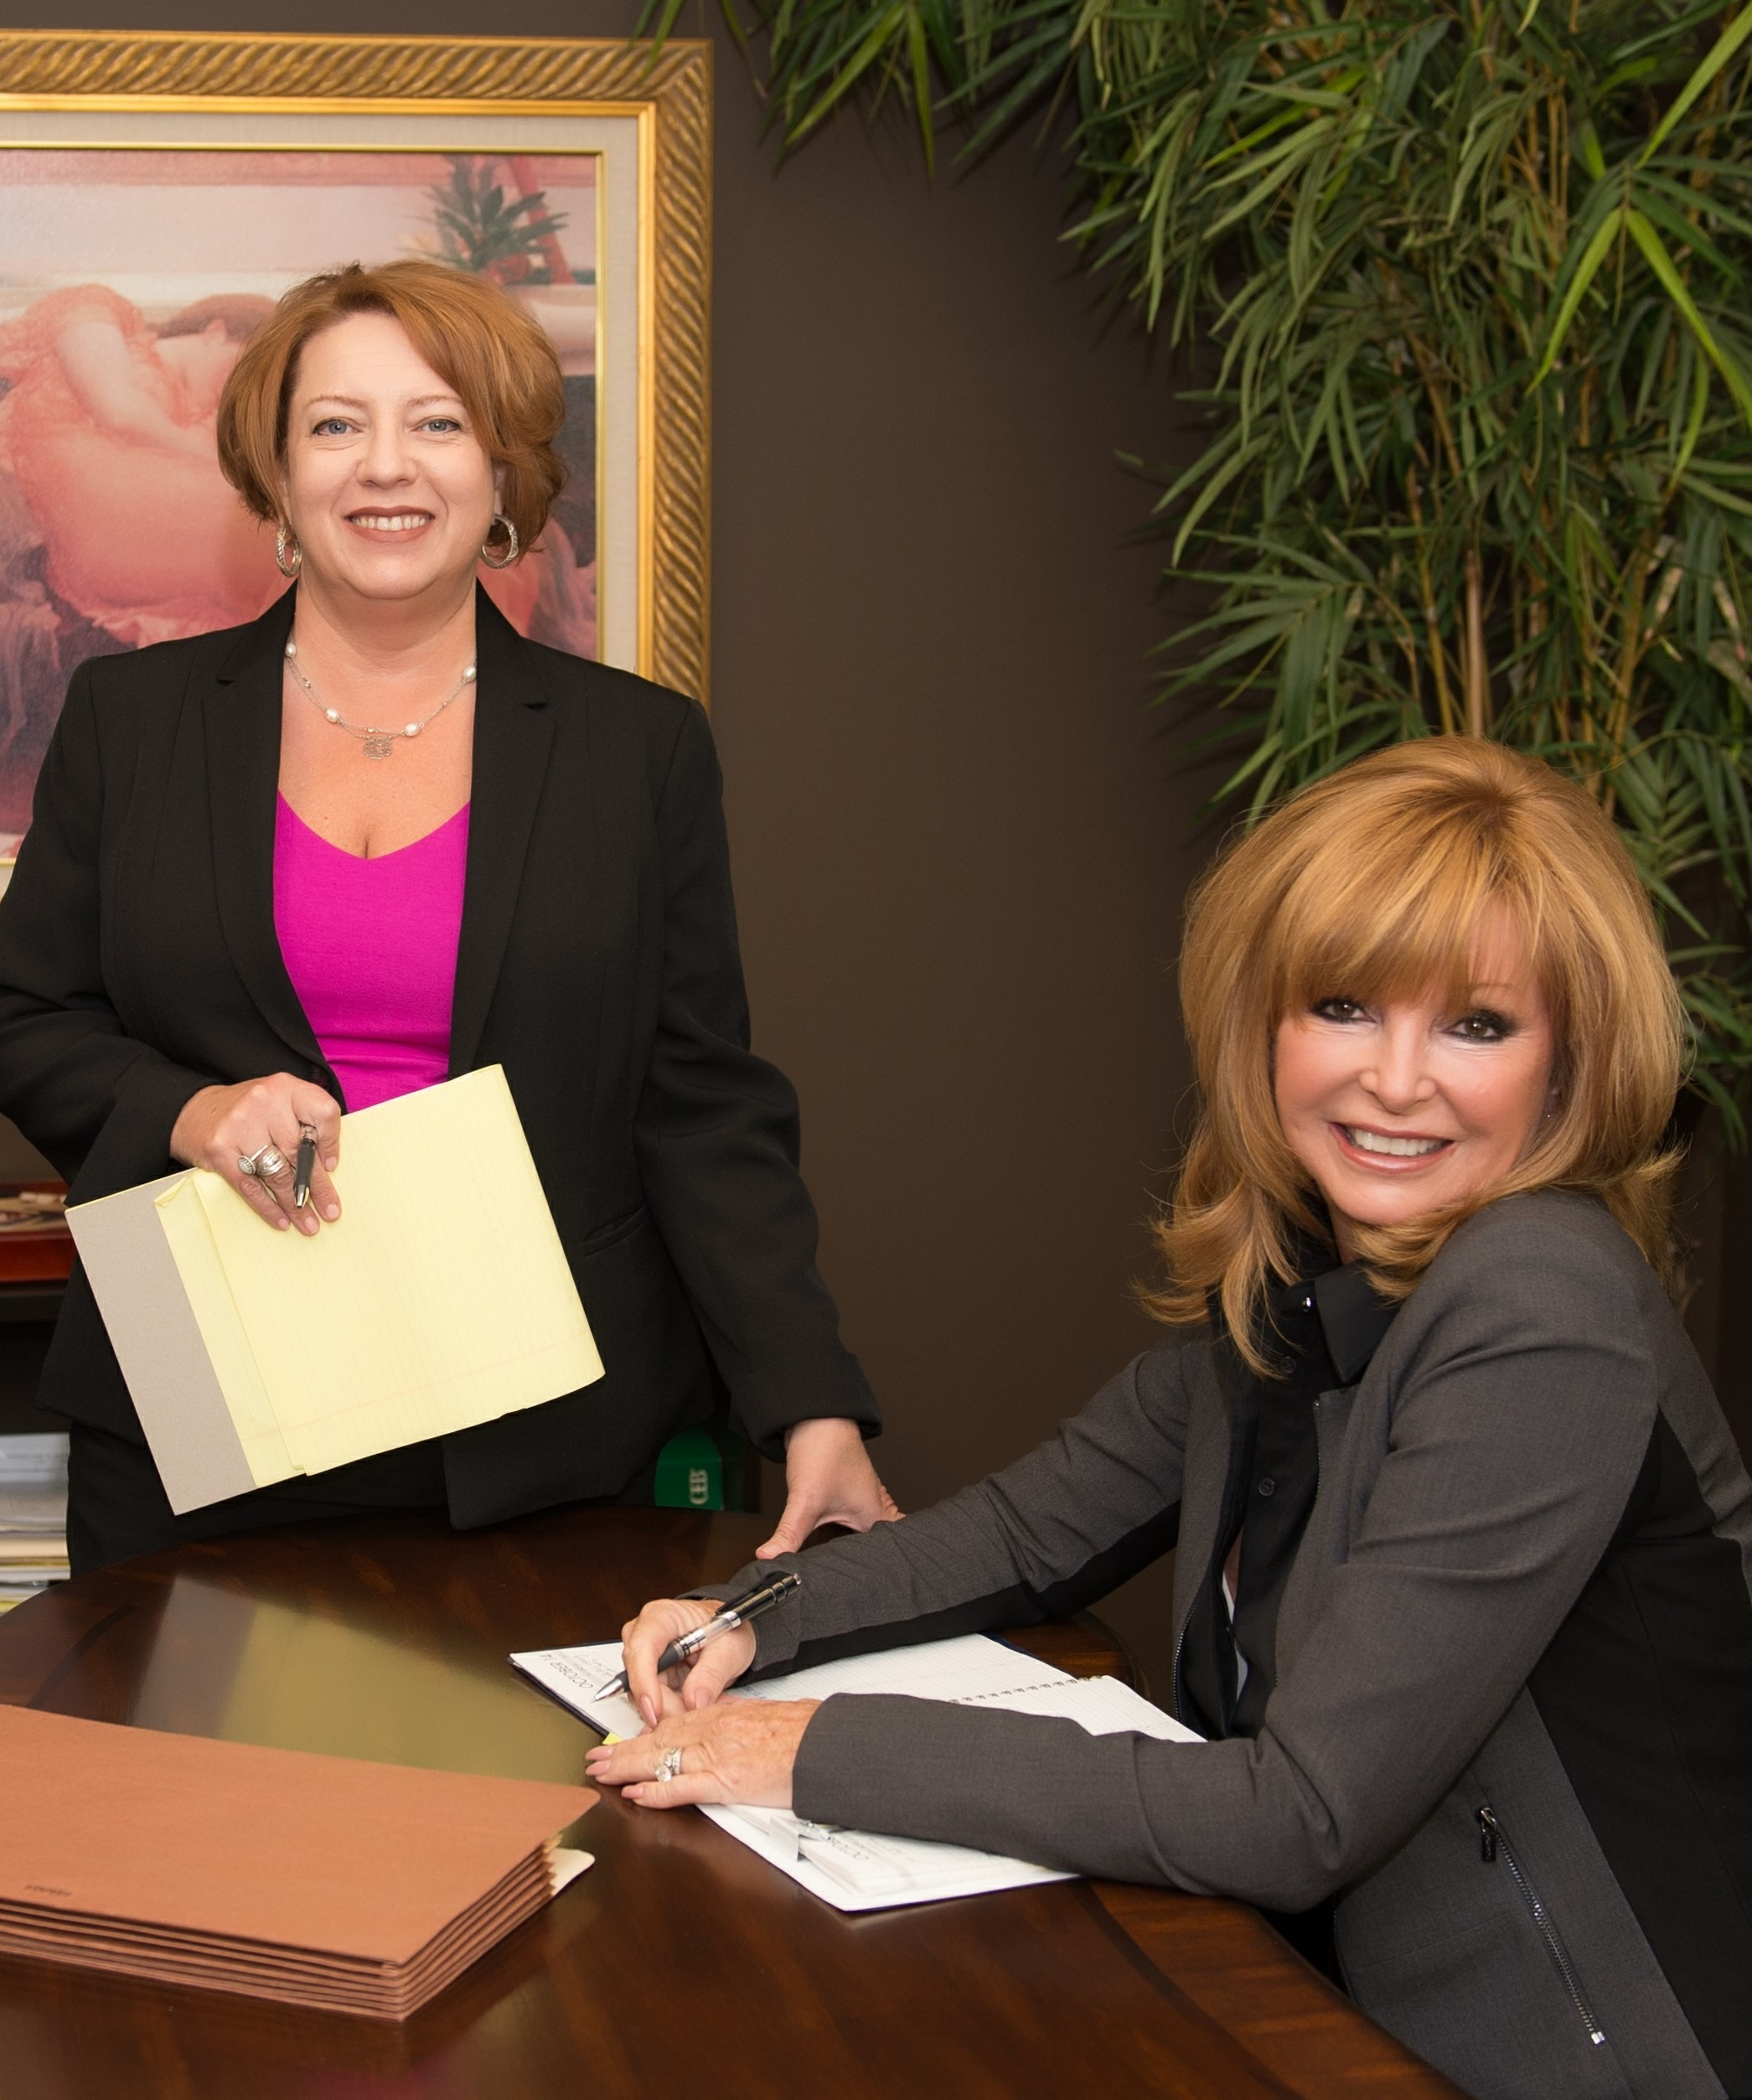 Attorneys Michelle Penna and Laurie Coker